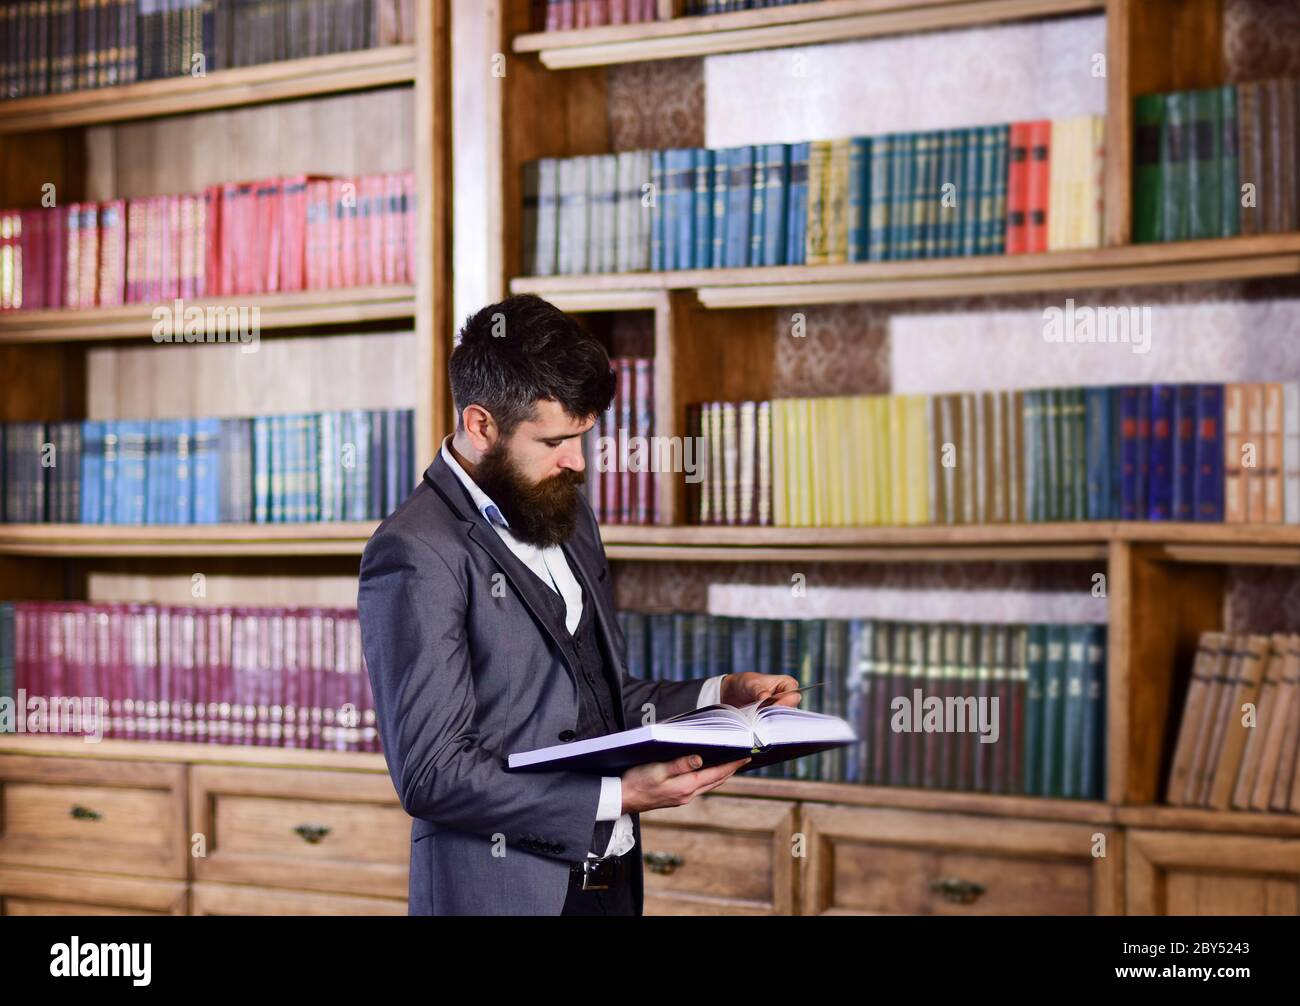 Mature Man With Serious Face Reading Professor Stands In Big Library And Holds Book Bearded Man In Expensive Suit In His Cabinet Study Learn Read Teach Library History Literature Concept Stock Photo